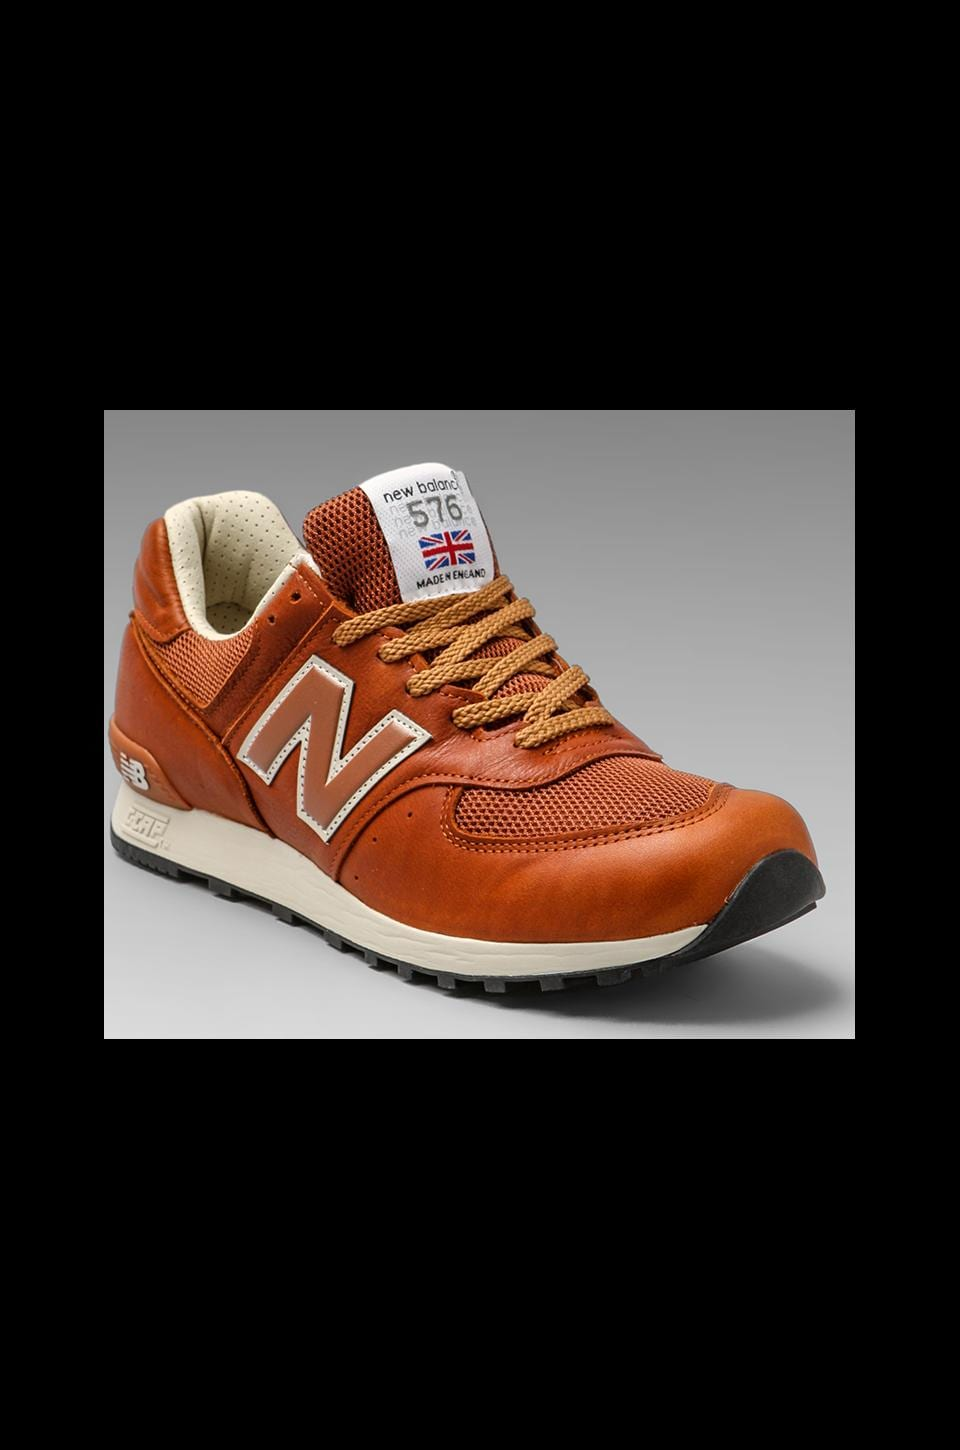 New Balance Made in England M576 Premium Leather in Tan